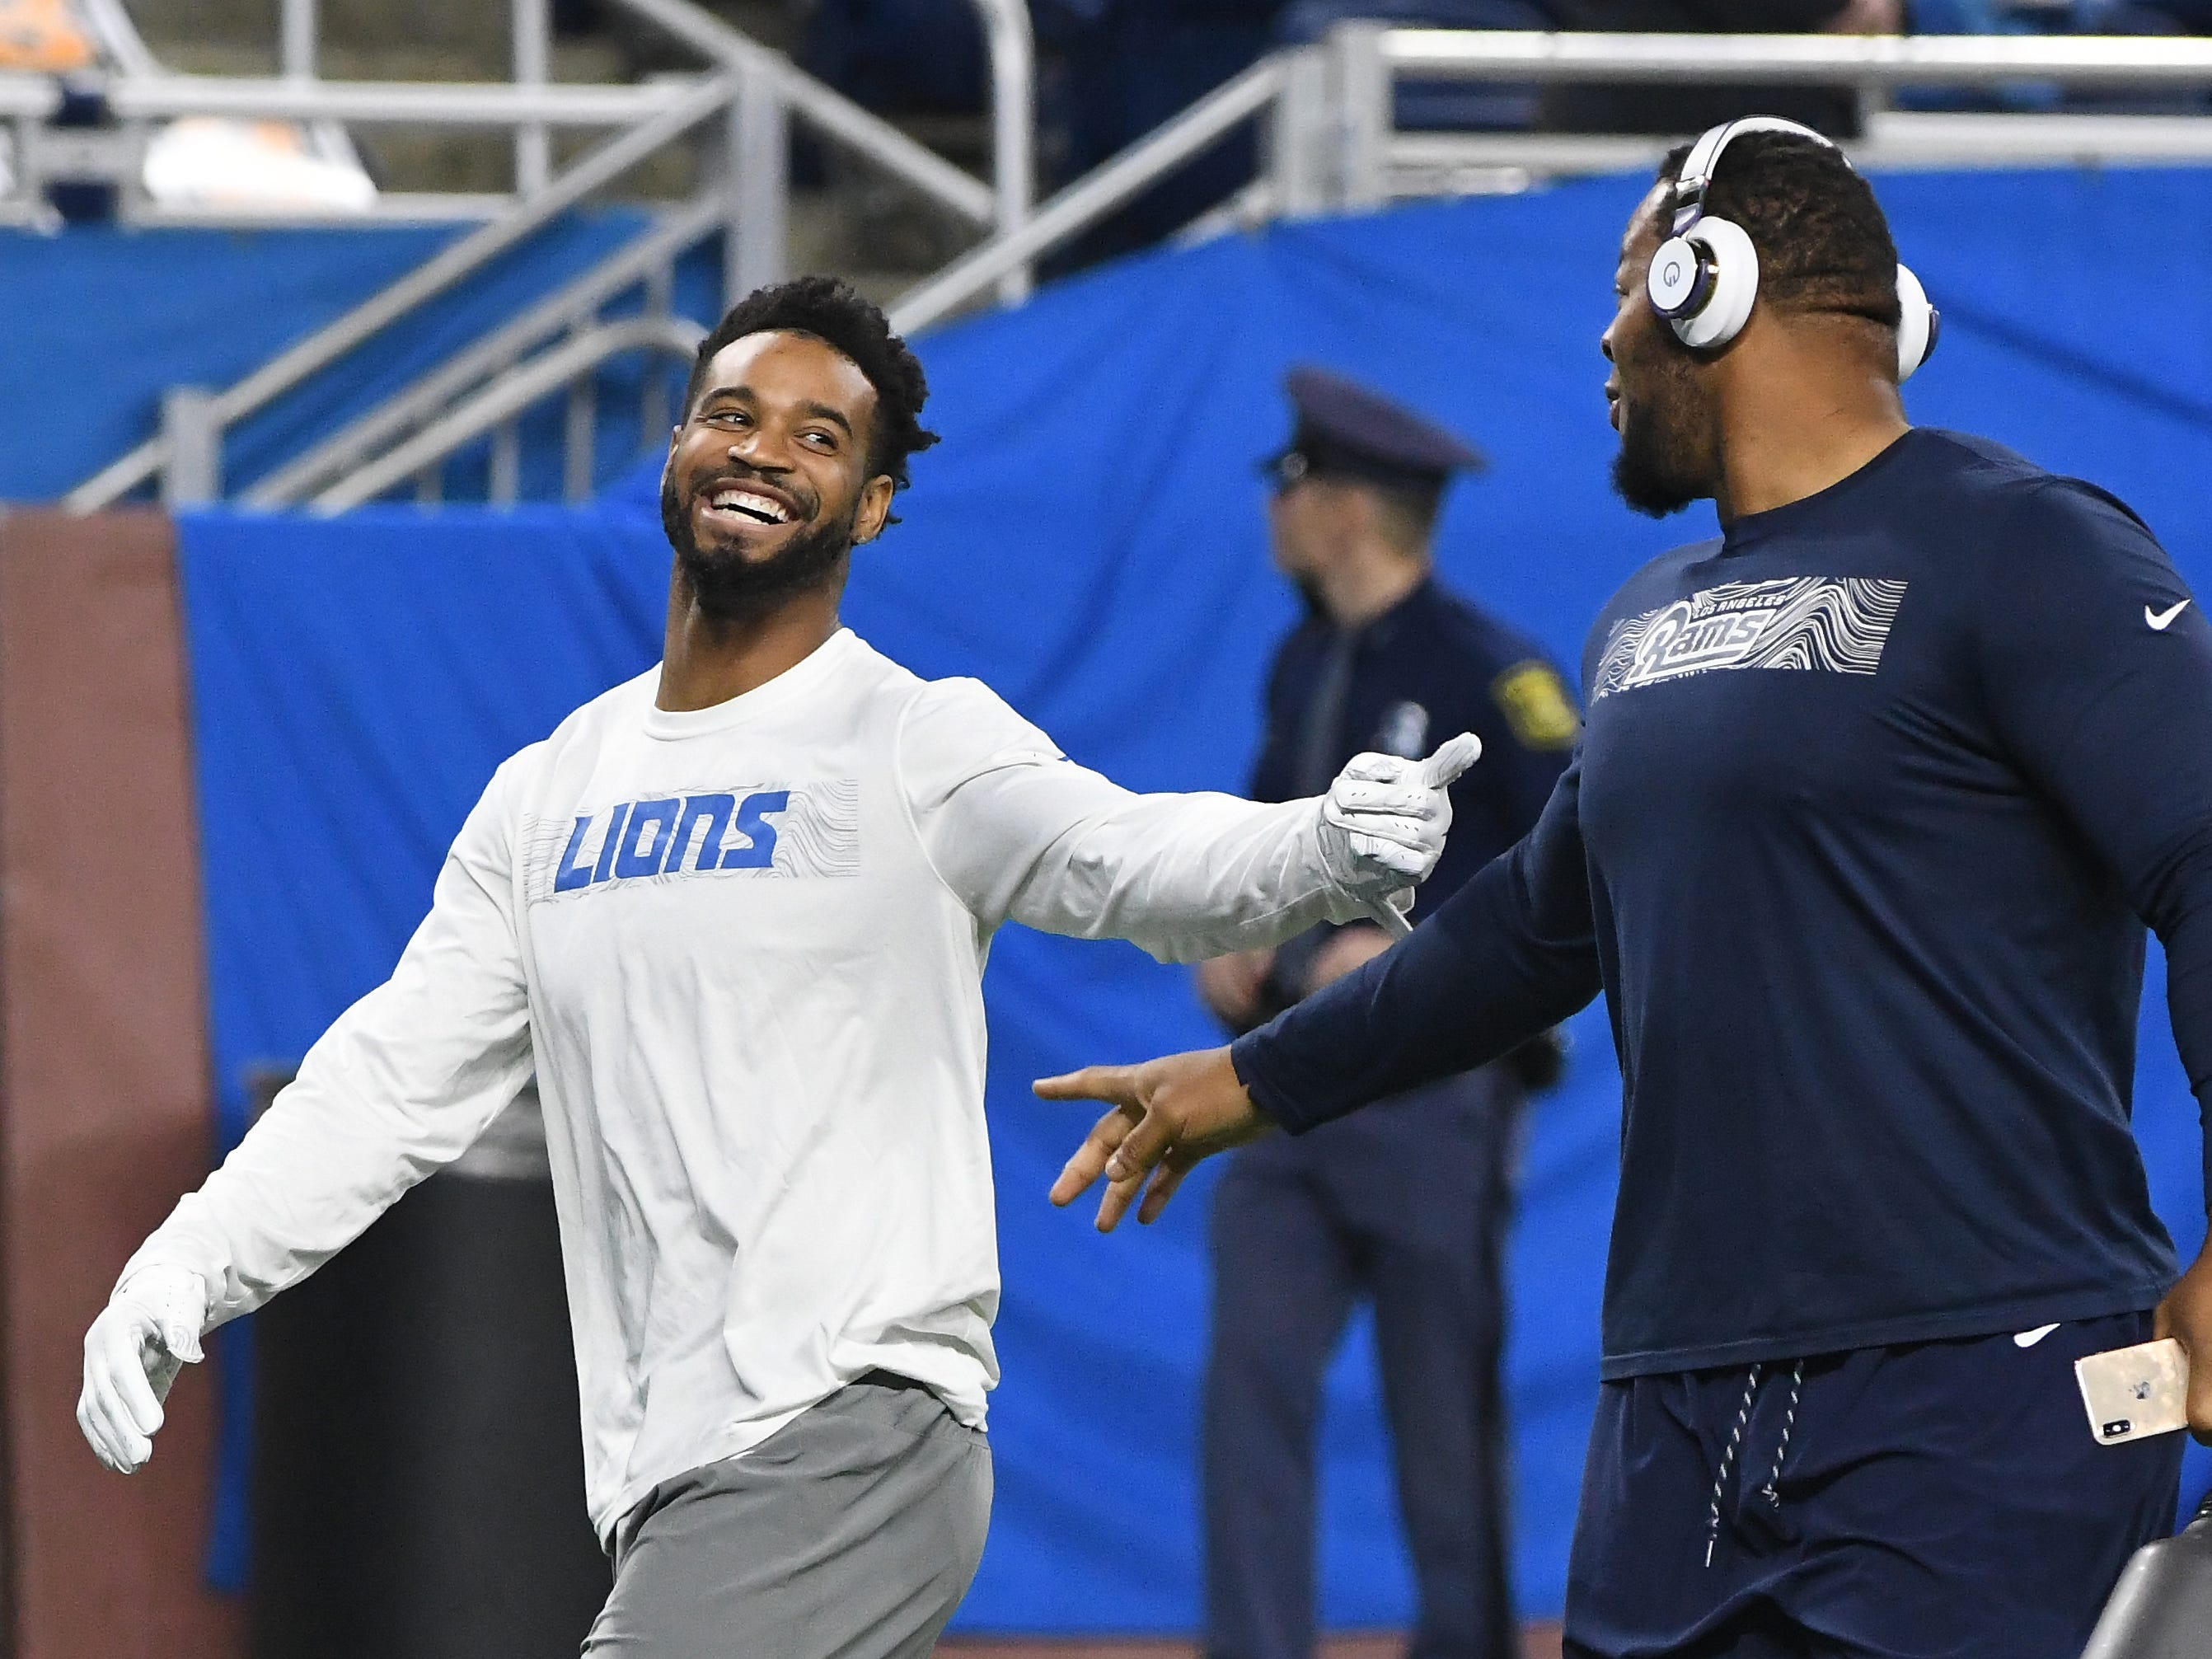 Lions' cornerback Darius Slay and former Detroit Lions, Los Angeles defensive tackle Ndamukong Suh chat as they leave the field after warmups.